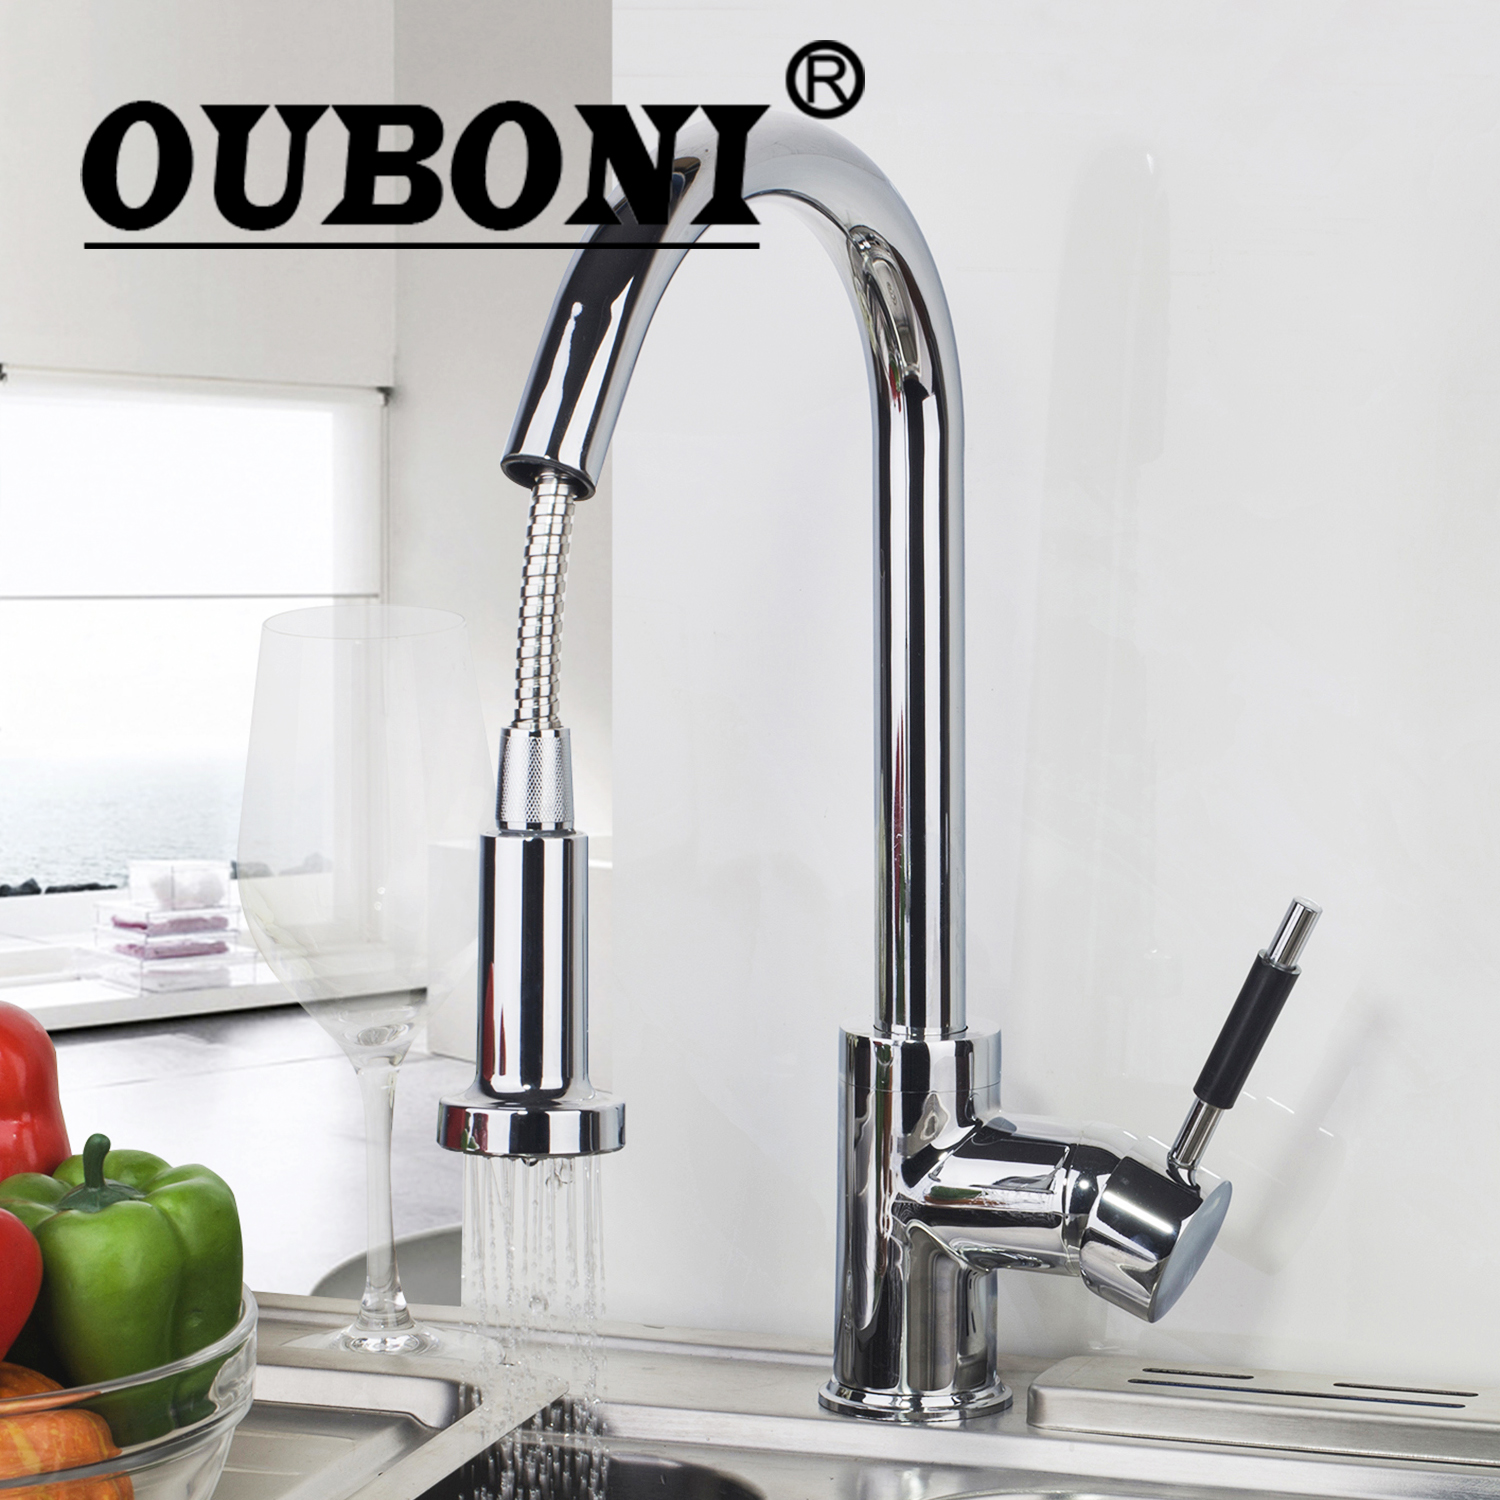 OUBONI 360 Swivel Polish Chrome Brass Countertop Tap Stream Pull Out Spout Kitchen Sink Faucet Hot & Cold Mixer Taps antique brass swivel spout dual cross handles kitchen